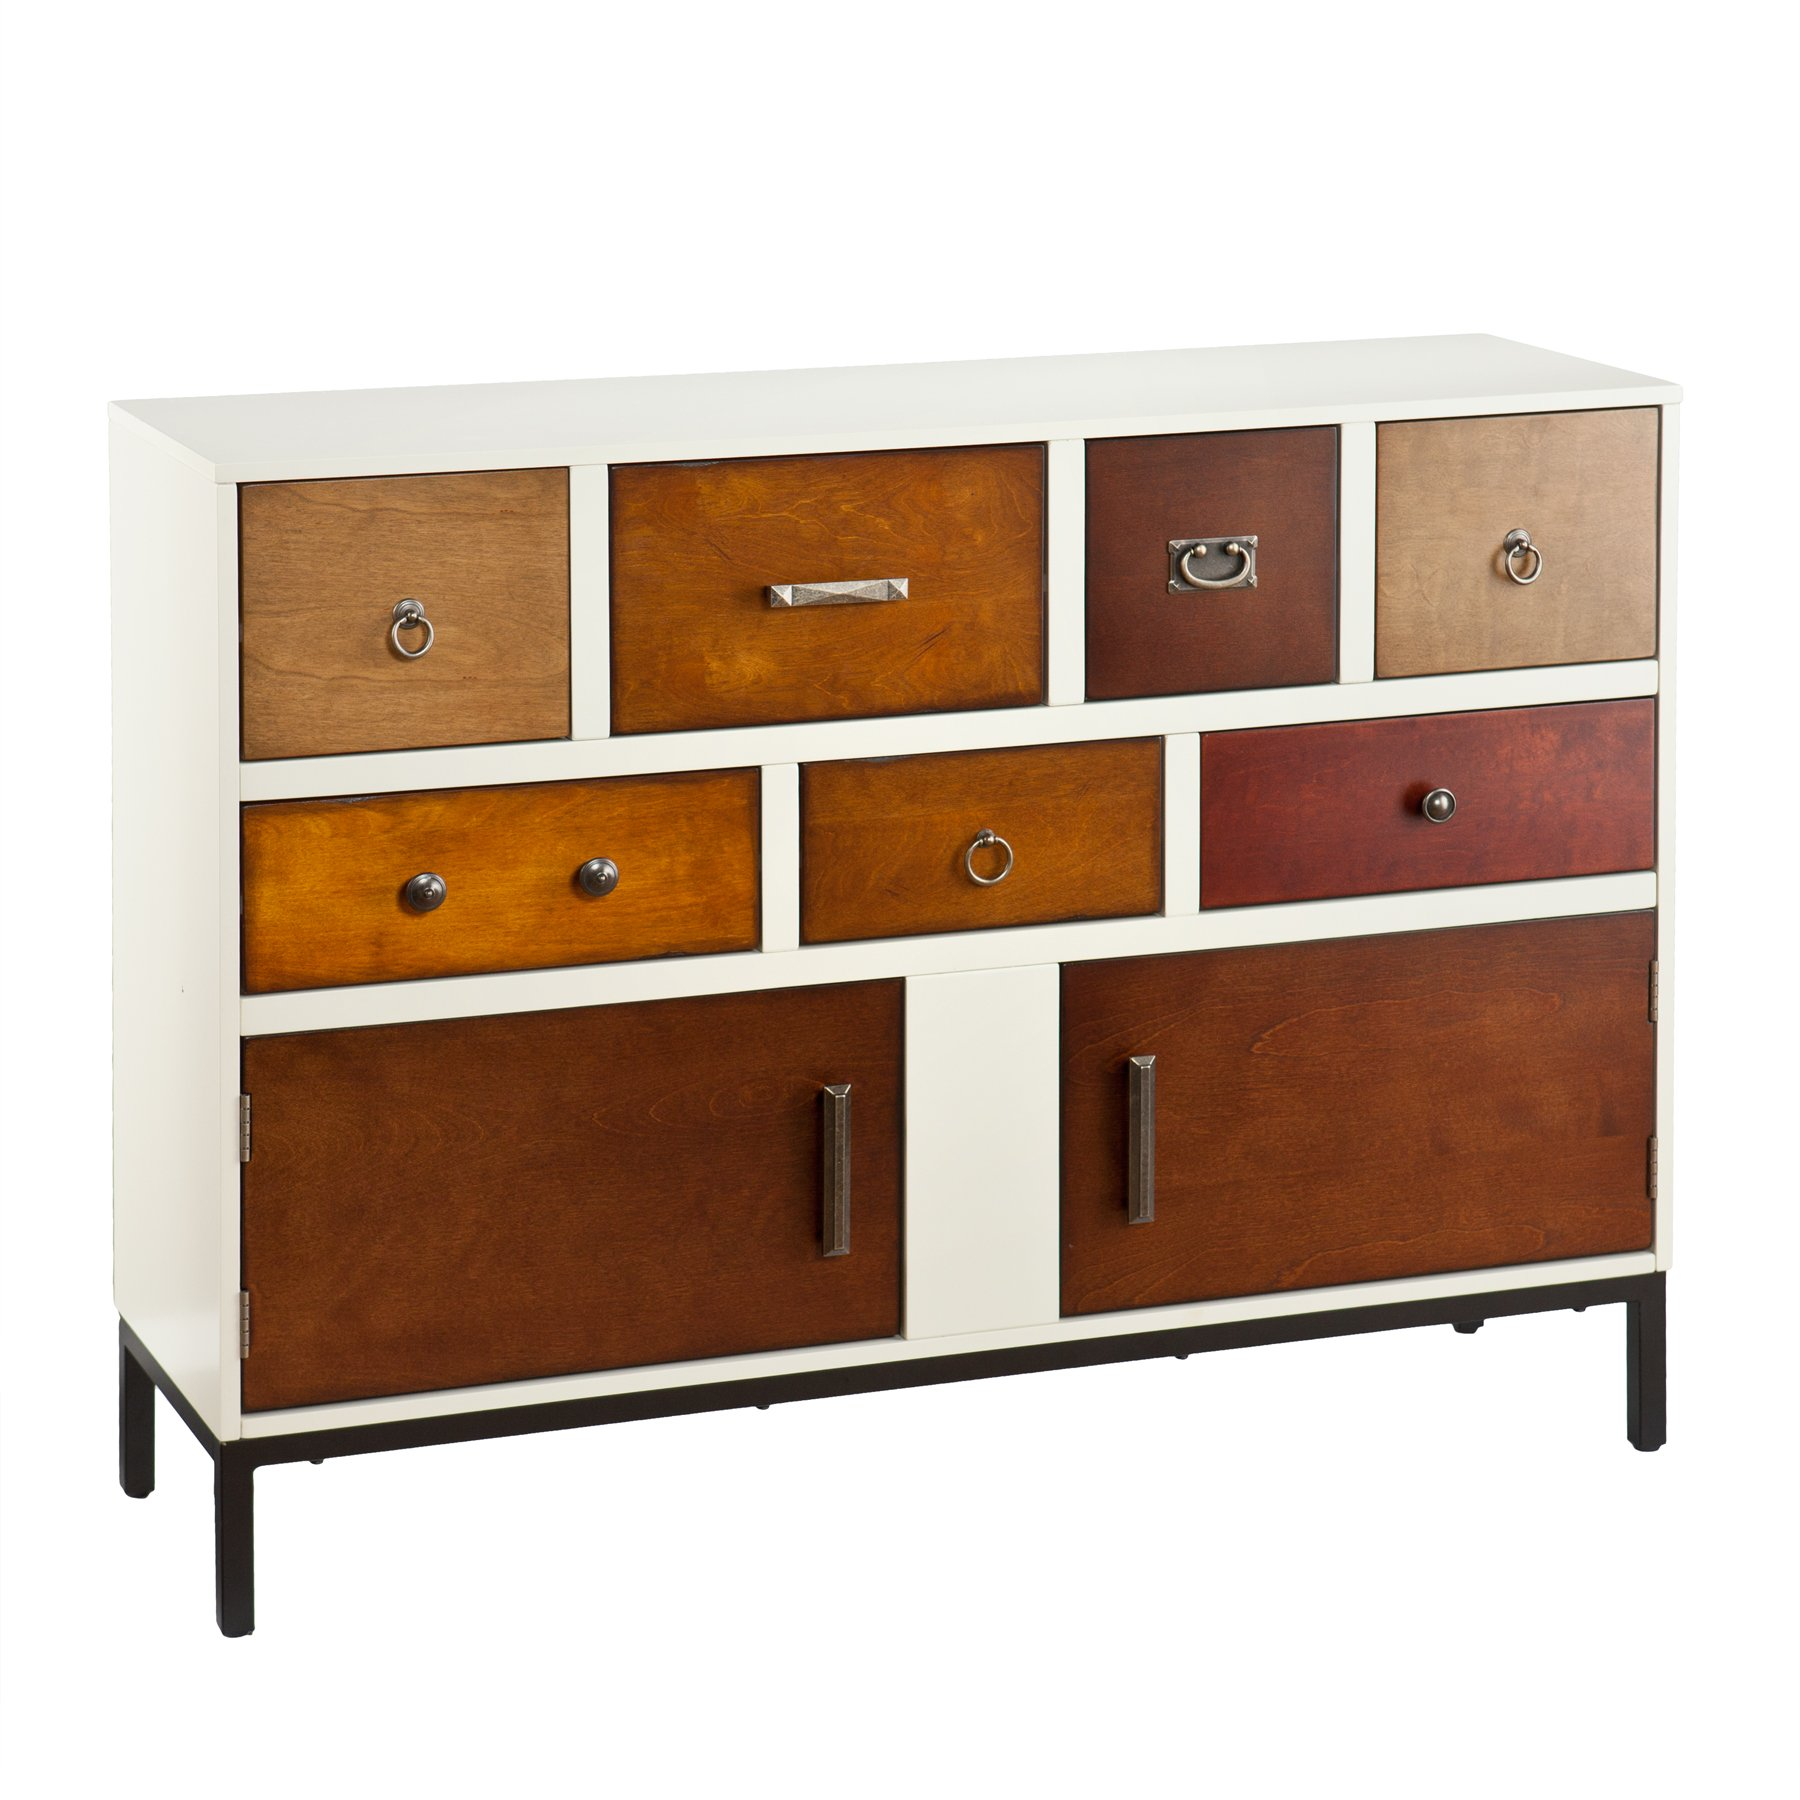 Devlin Console Credenza - Assorted Wood Finish - Midcentury Modern Style by SEI